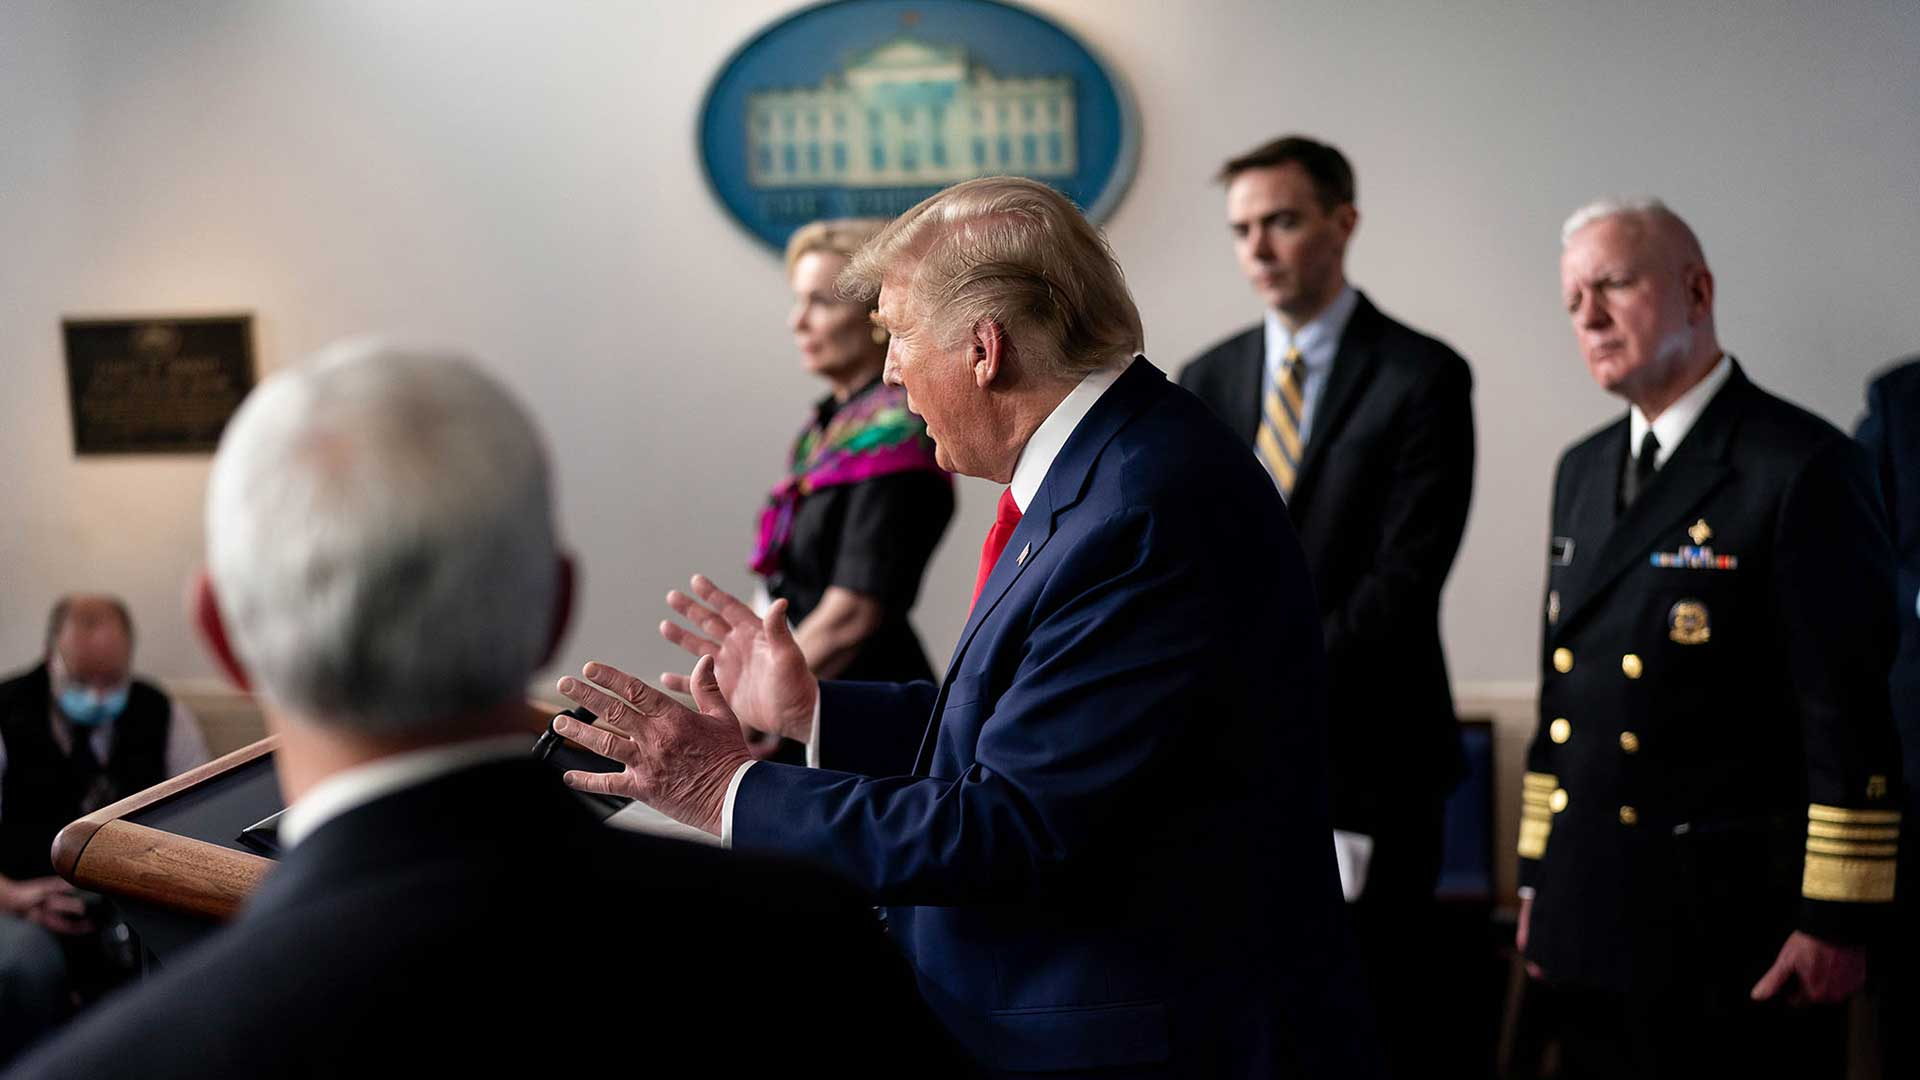 President Donald Trump said his executive order suspending some forms of immigration for 60 days is meant to protect jobs for American workers during COVID-19. But experts say it does little more than what has already been done to tighten immigration.